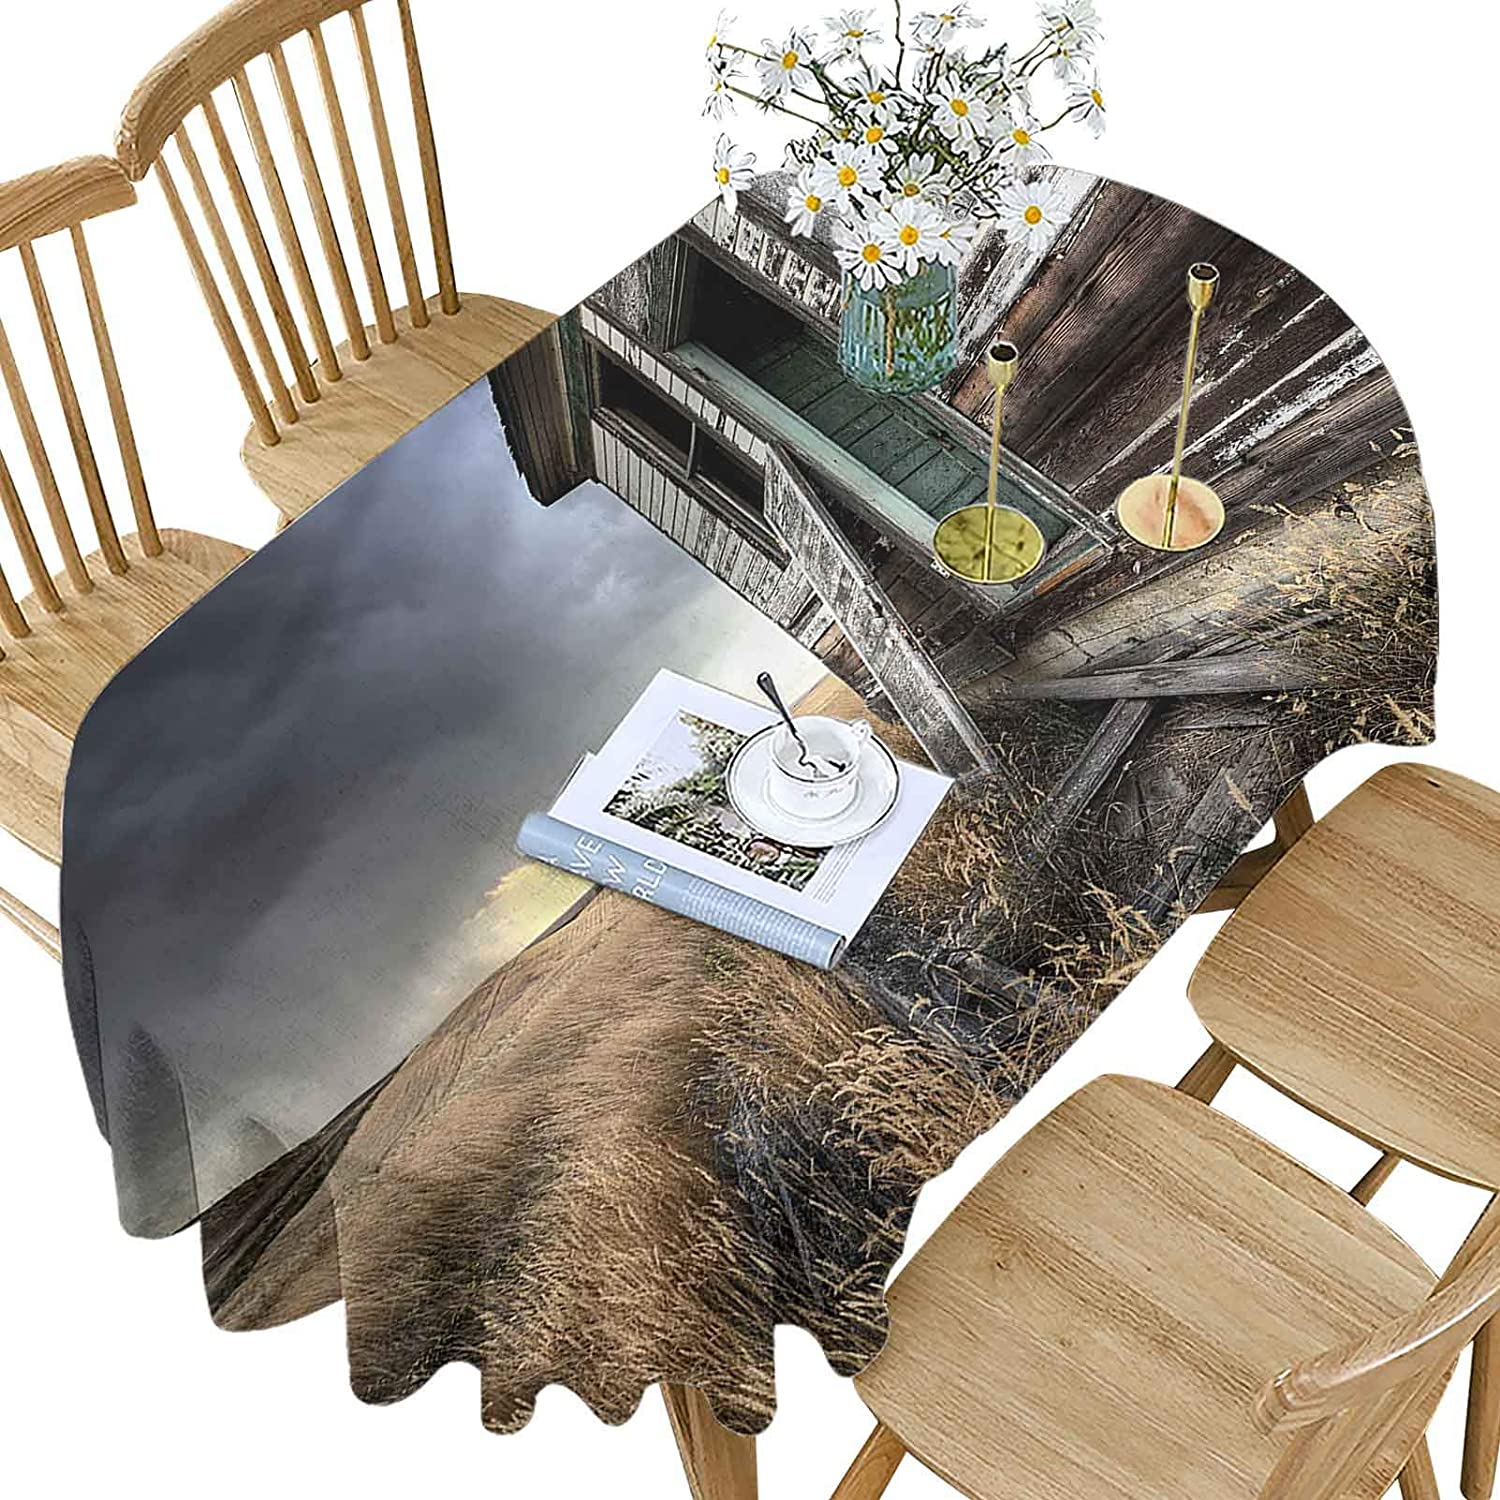 Rustic Polyester Oval High quality new Tablecloth Wooden Field Weekly update Patte Farmhouse in